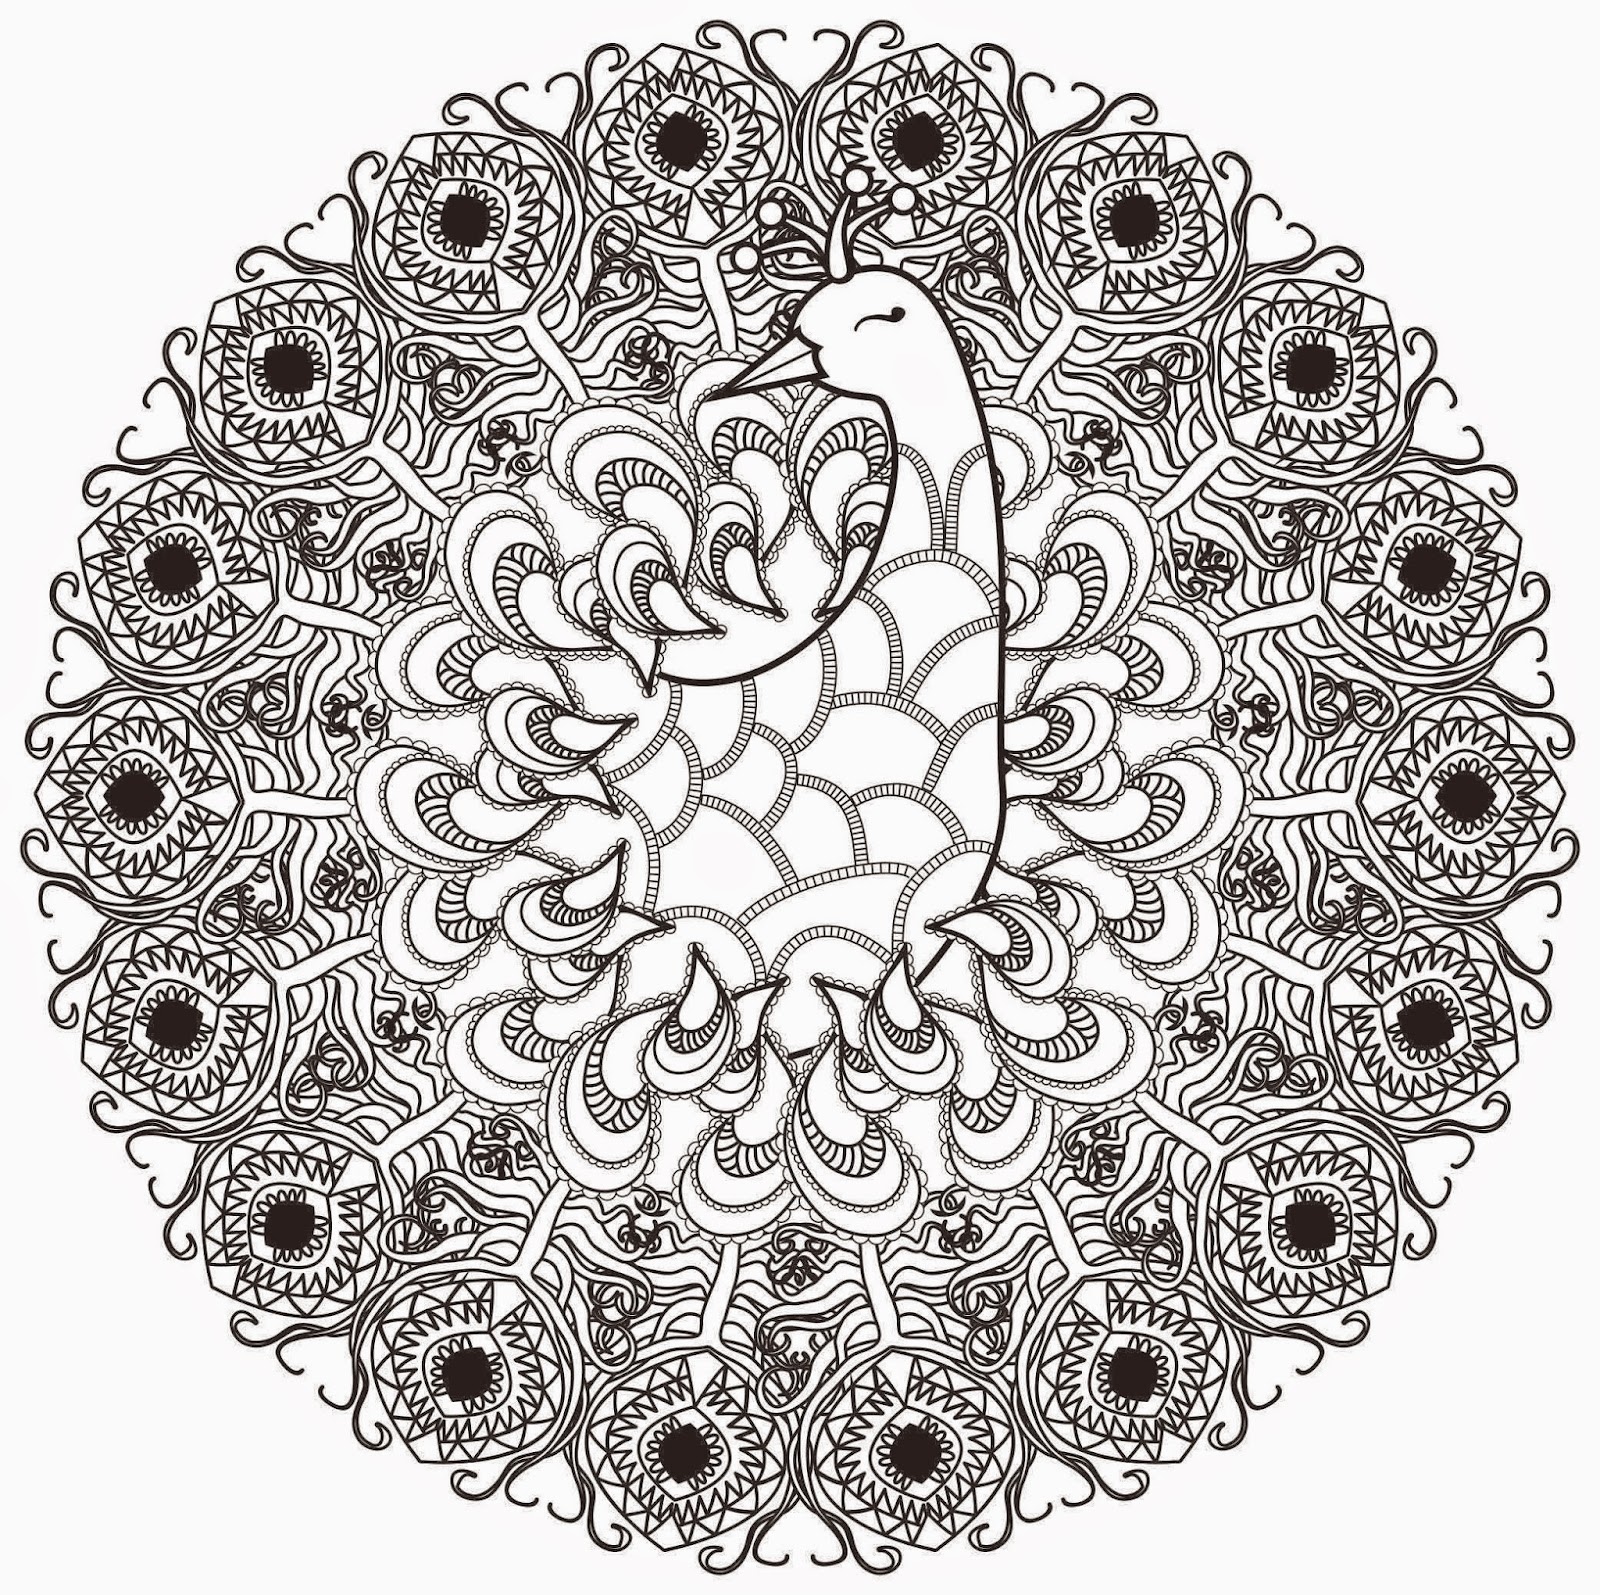 Free coloring pages of mindfulness free